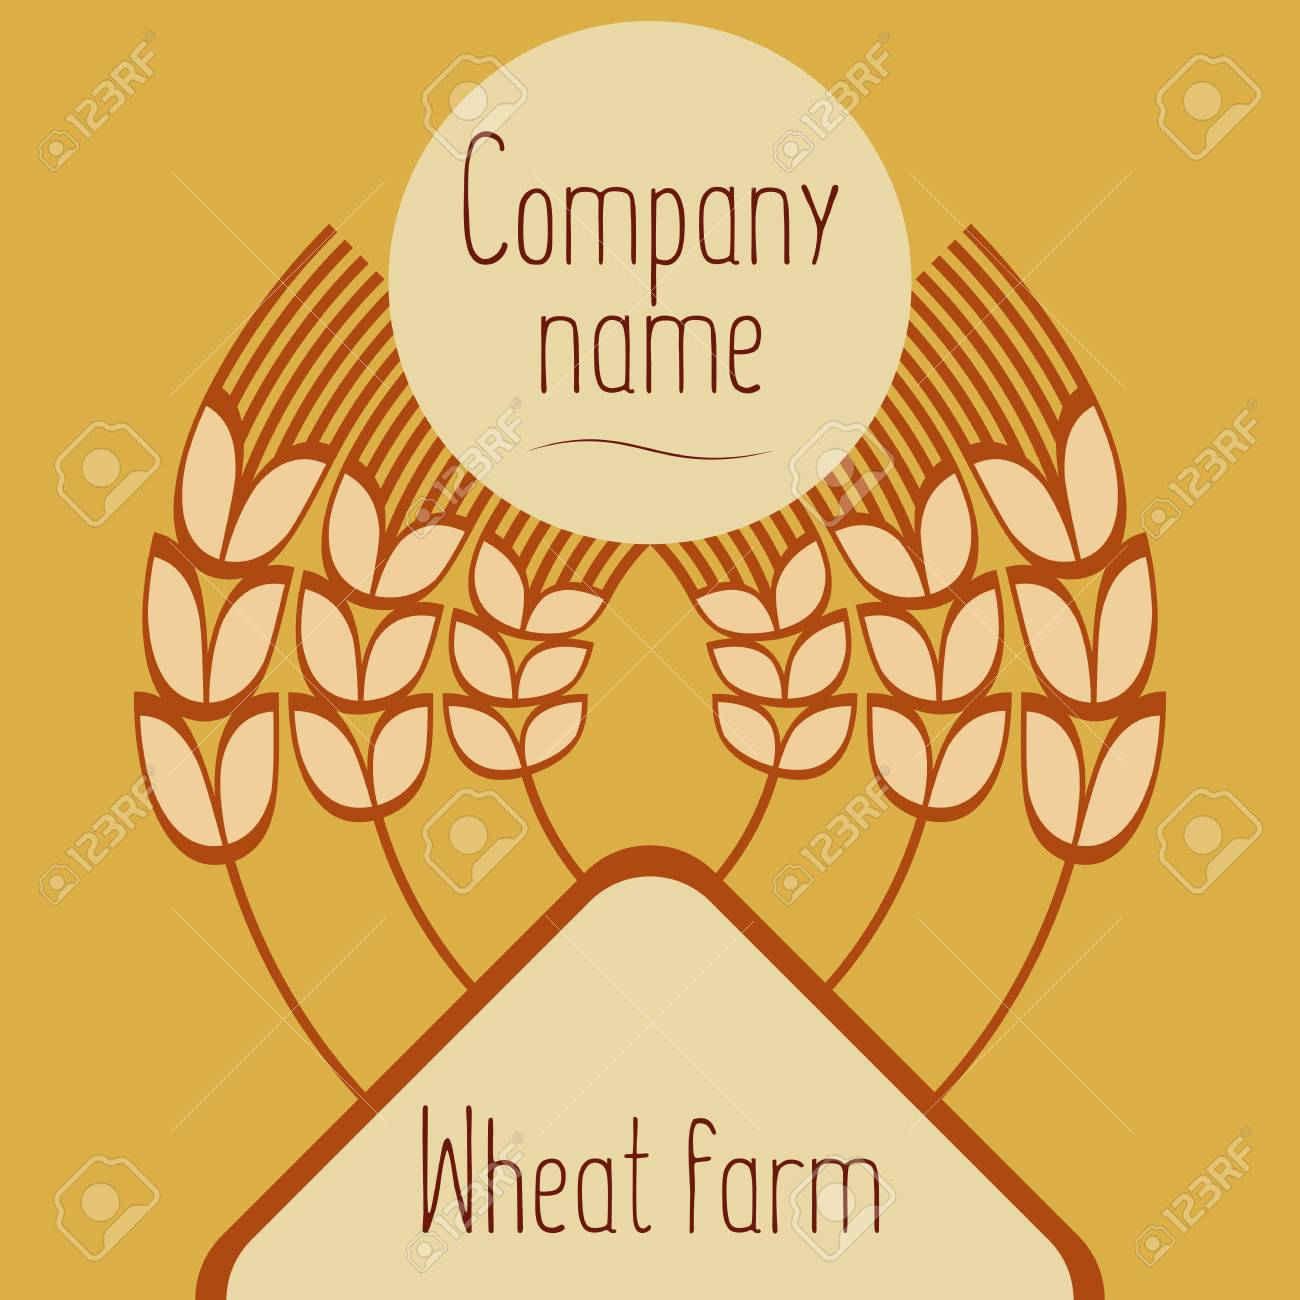 hight resolution of logo with grain ears for the food grain company the label for registration of goods at a fair pastries bakeries the stylized ears of wheat a rye